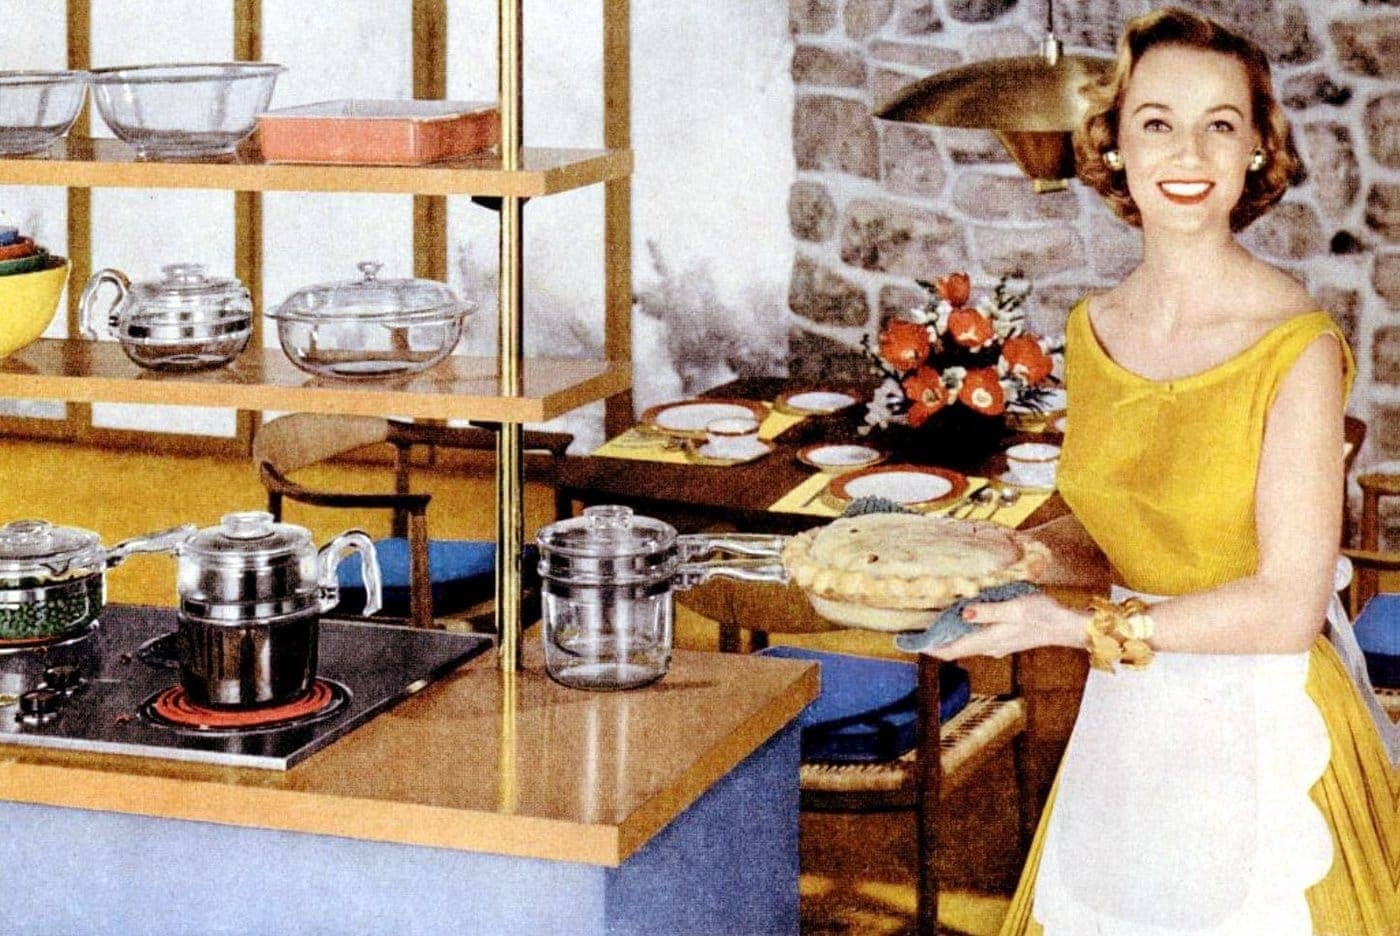 Pyrex - For the modern way to cook - 1955 kitchen